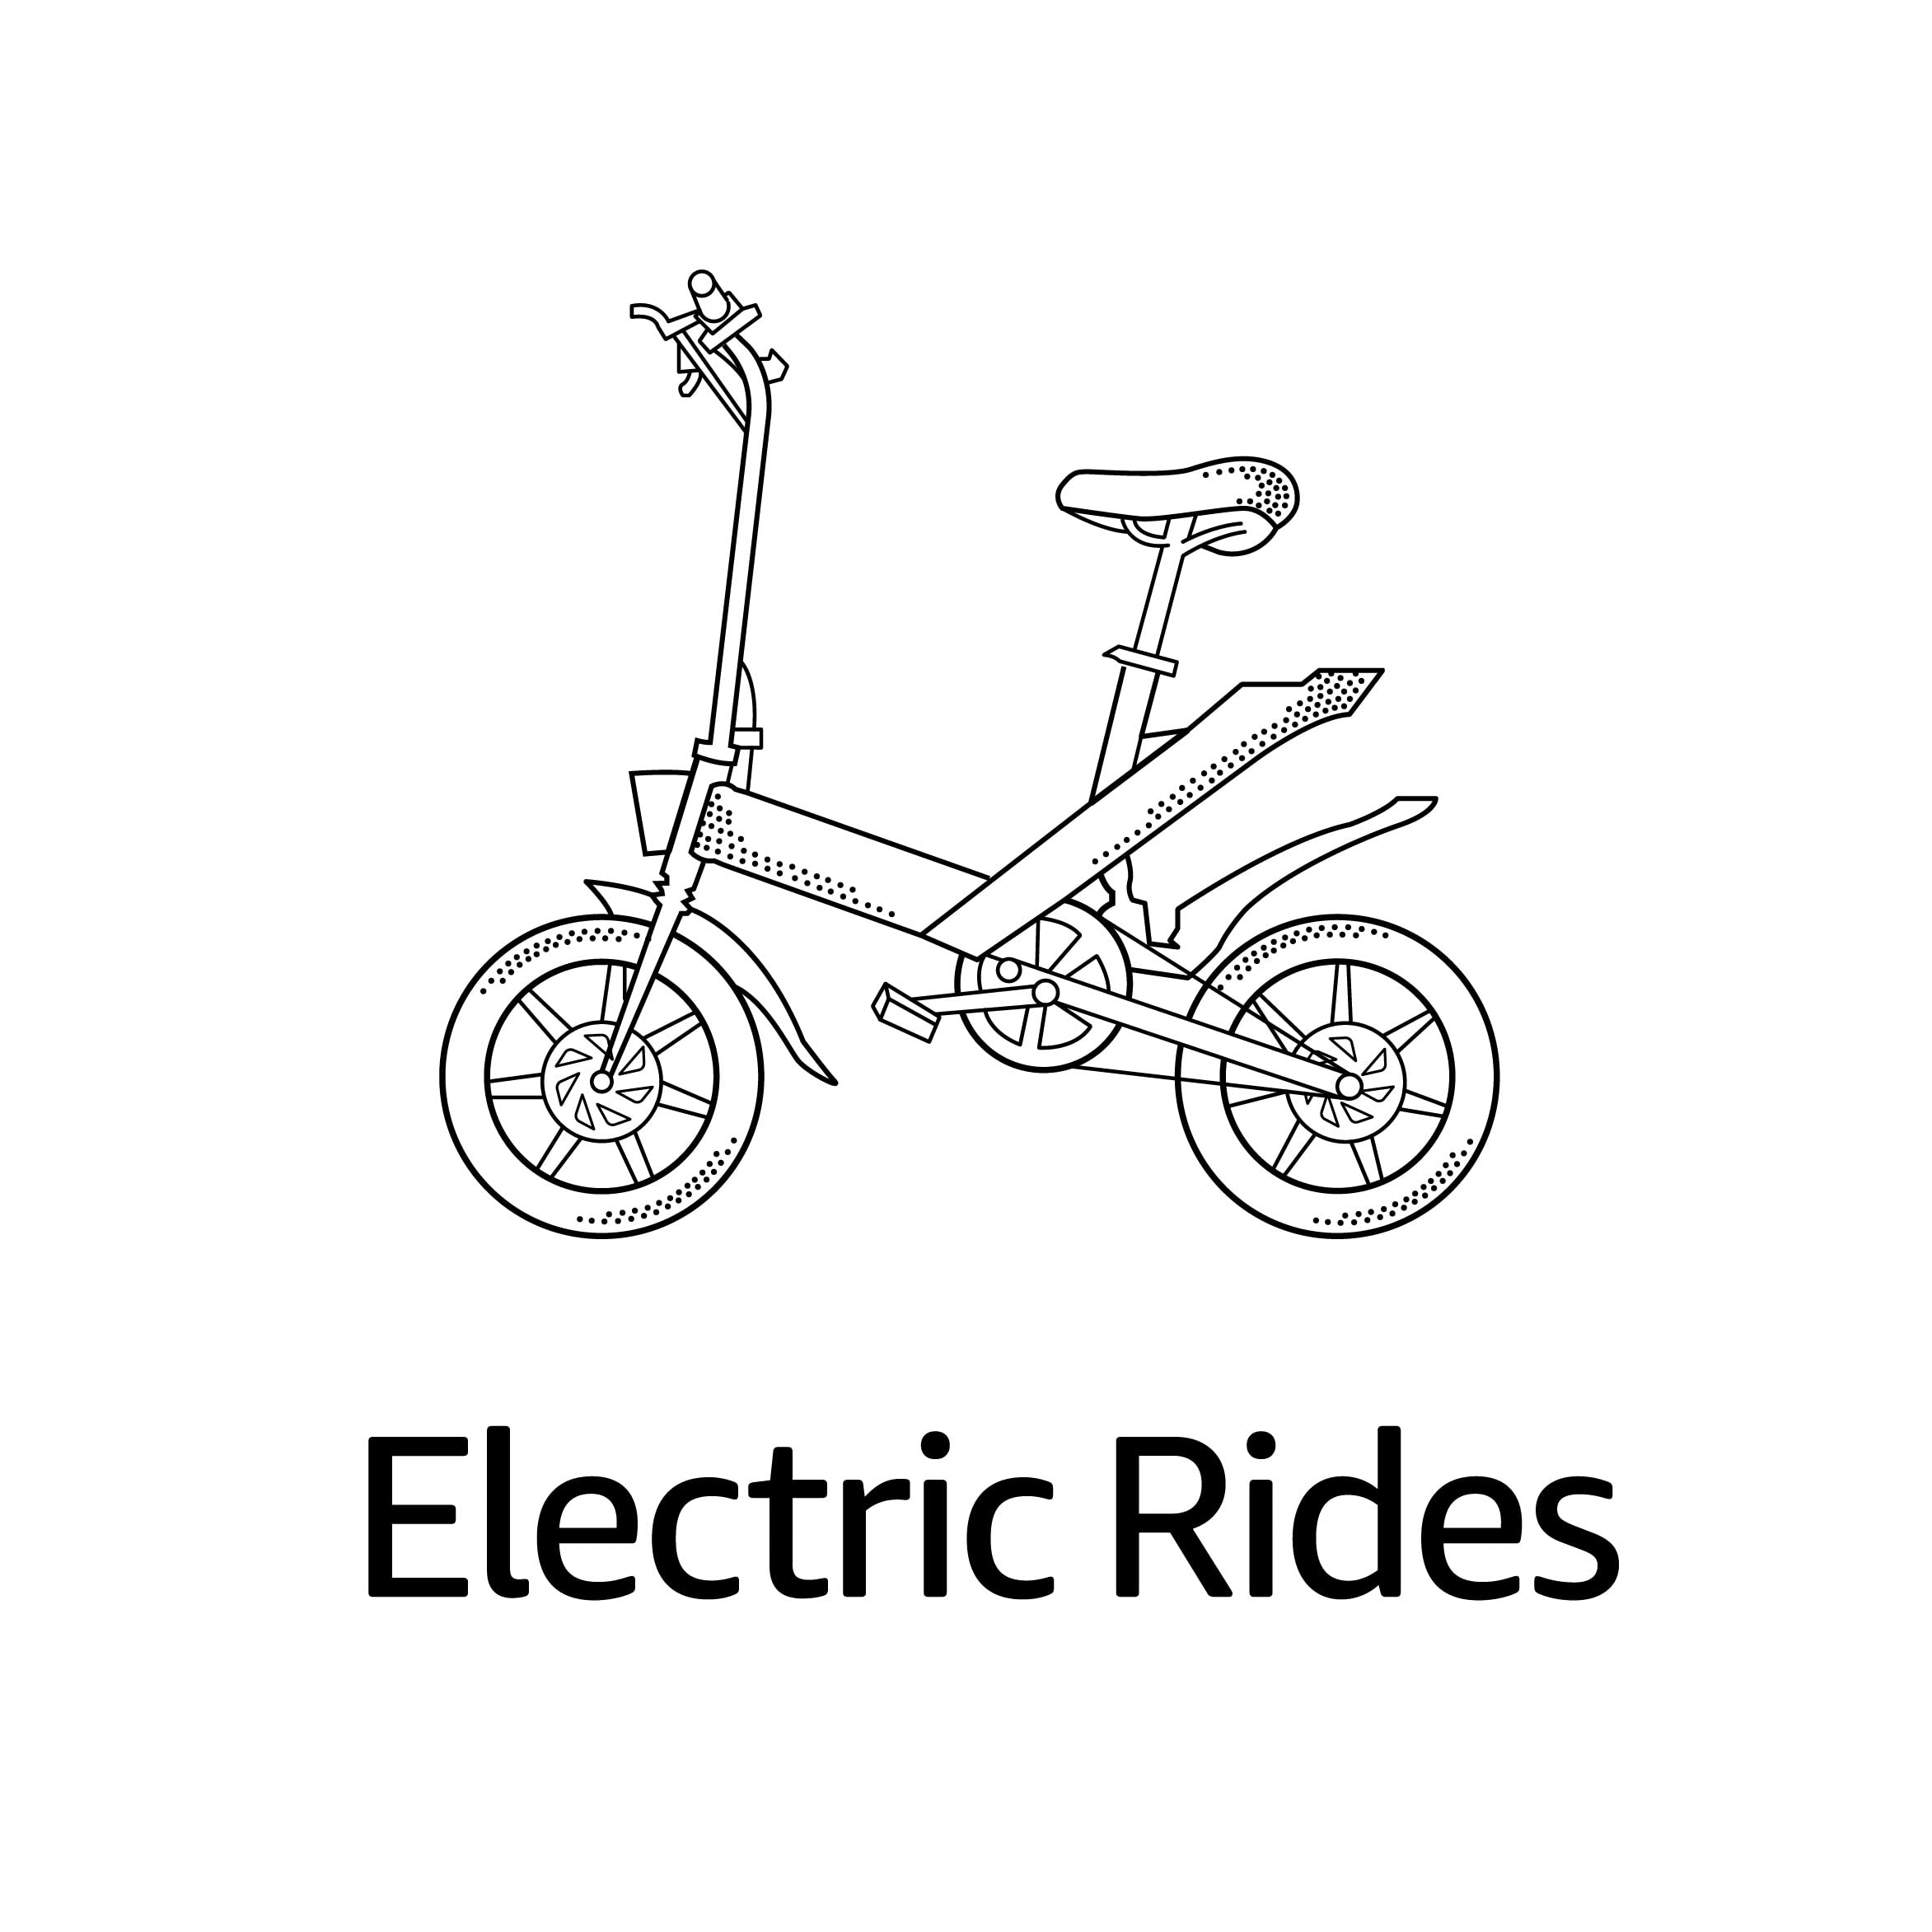 Electric rides